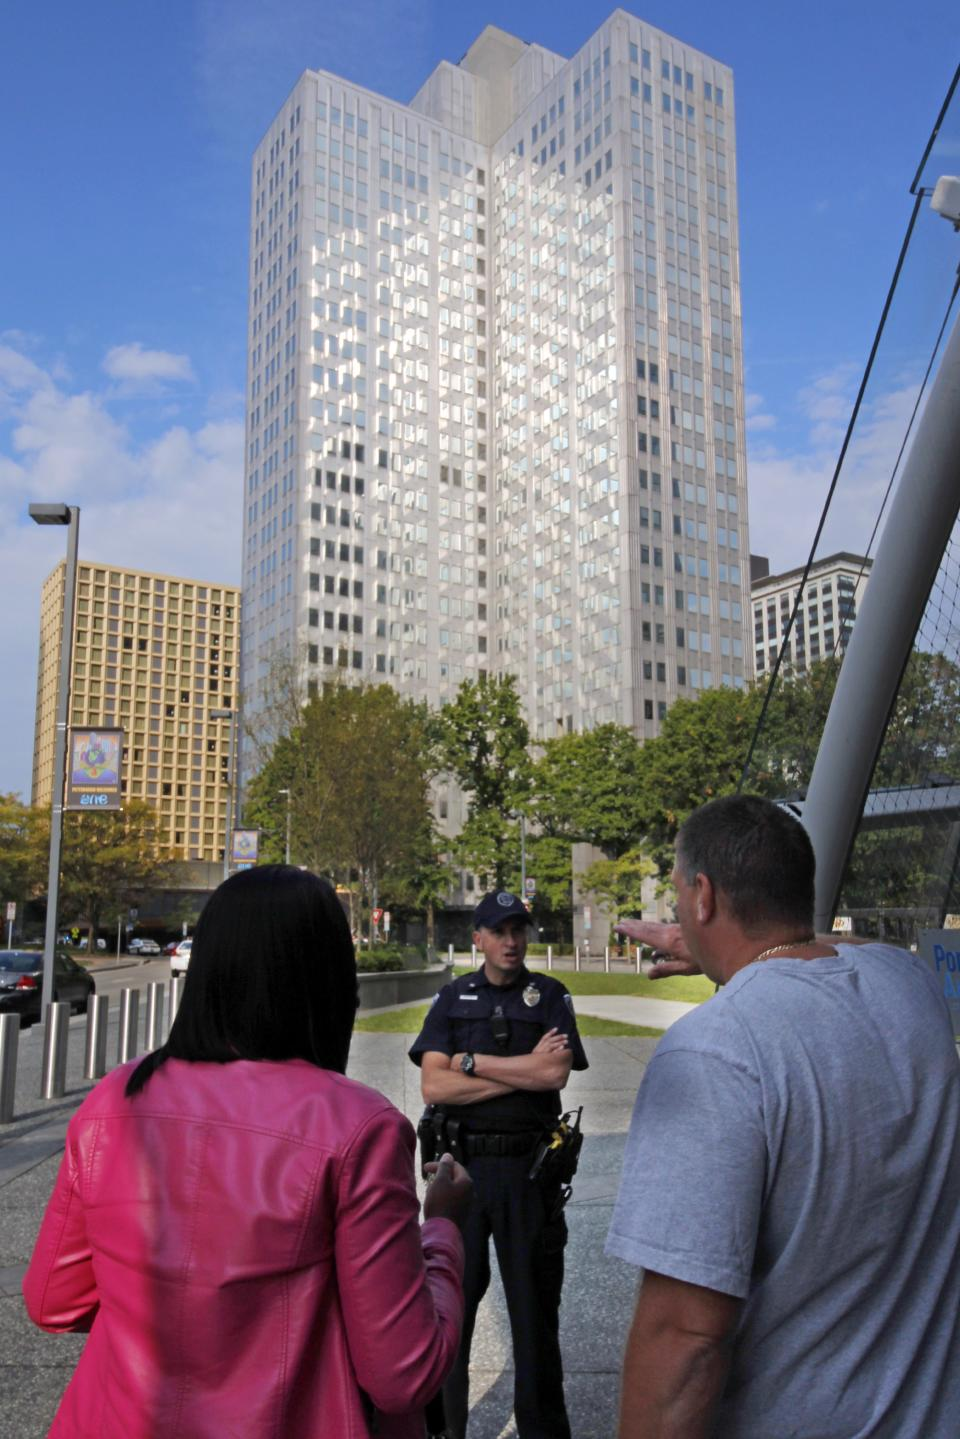 Police block off the area around Three Gateway Centeroffice building, rear, where they are negotiating with a man who claims to have a bomb, in downtown Pittsburgh Friday, Sept. 21, 2012. A call about an armed man inside the building prompted an evacuation amid reports of a hostage situation. (AP Photo/Gene J. Puskar)